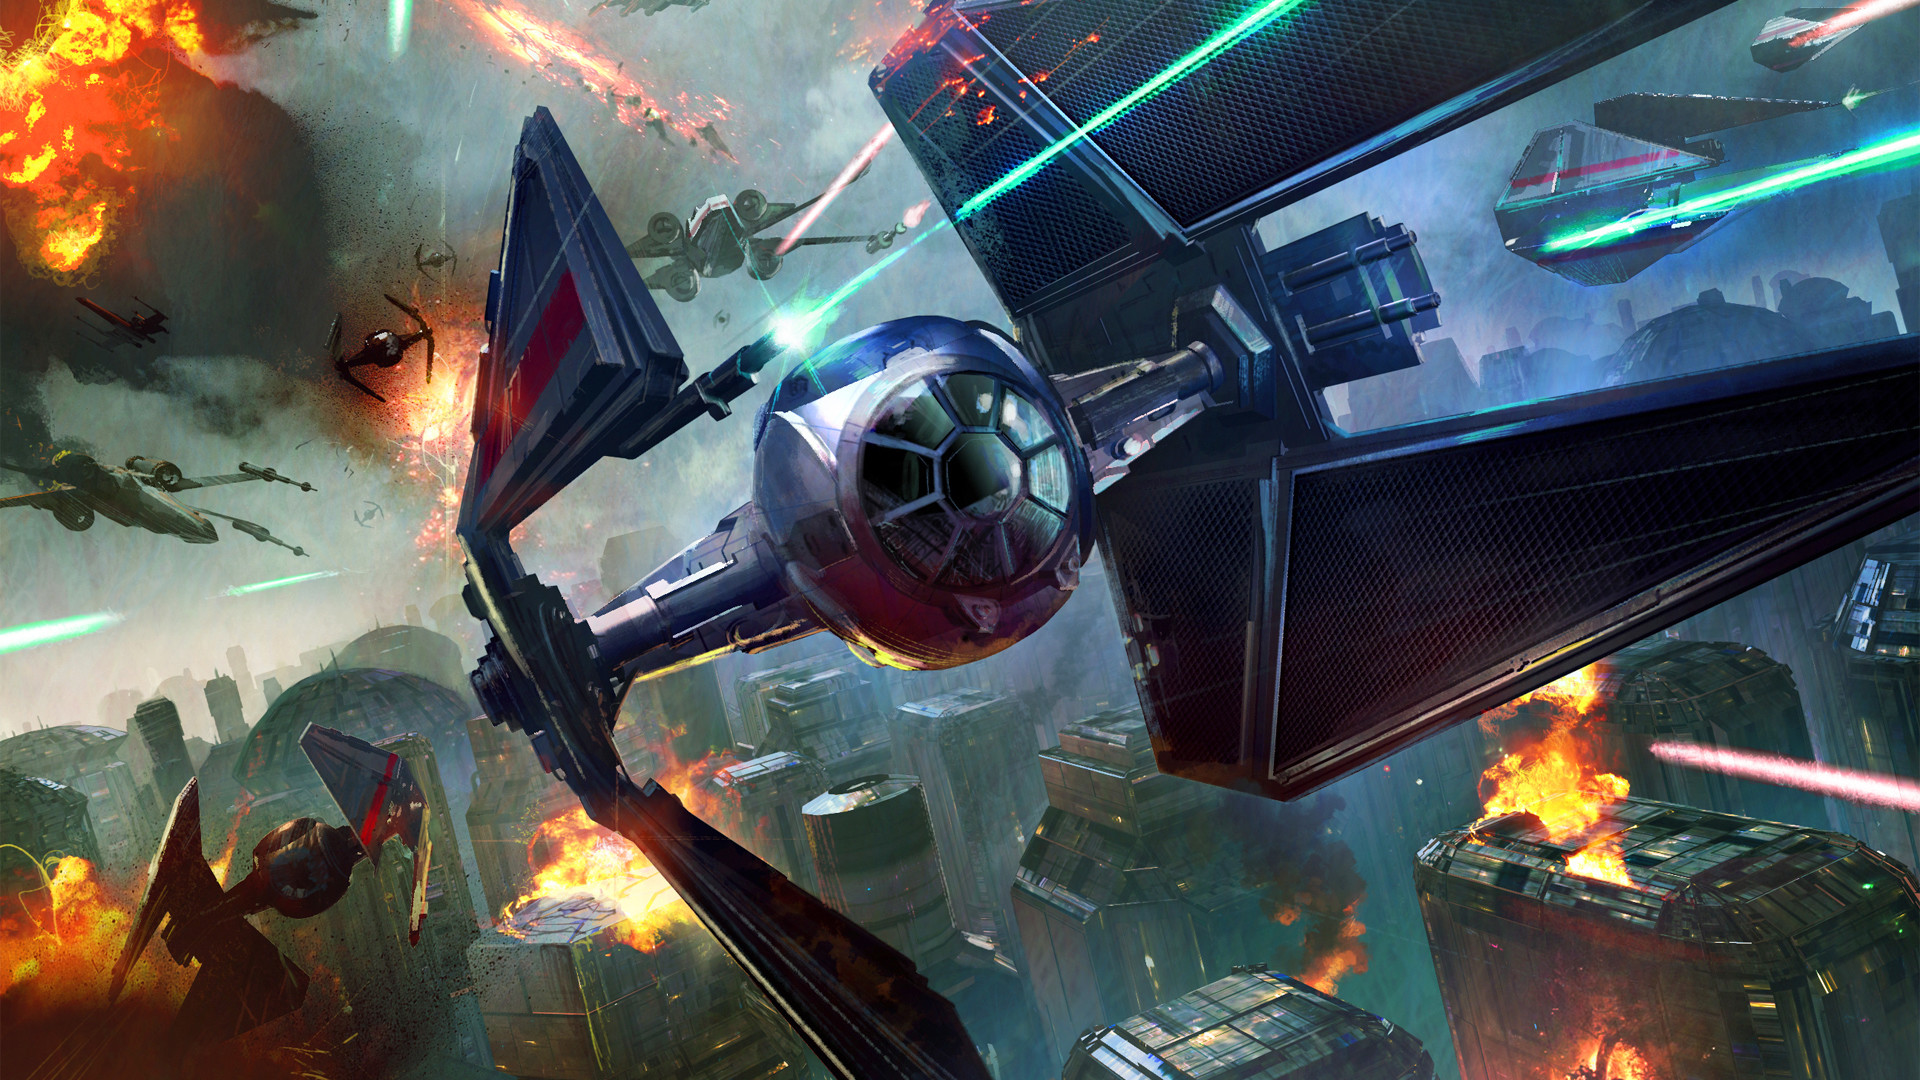 Cool star wars backgrounds hd voltagebd Gallery